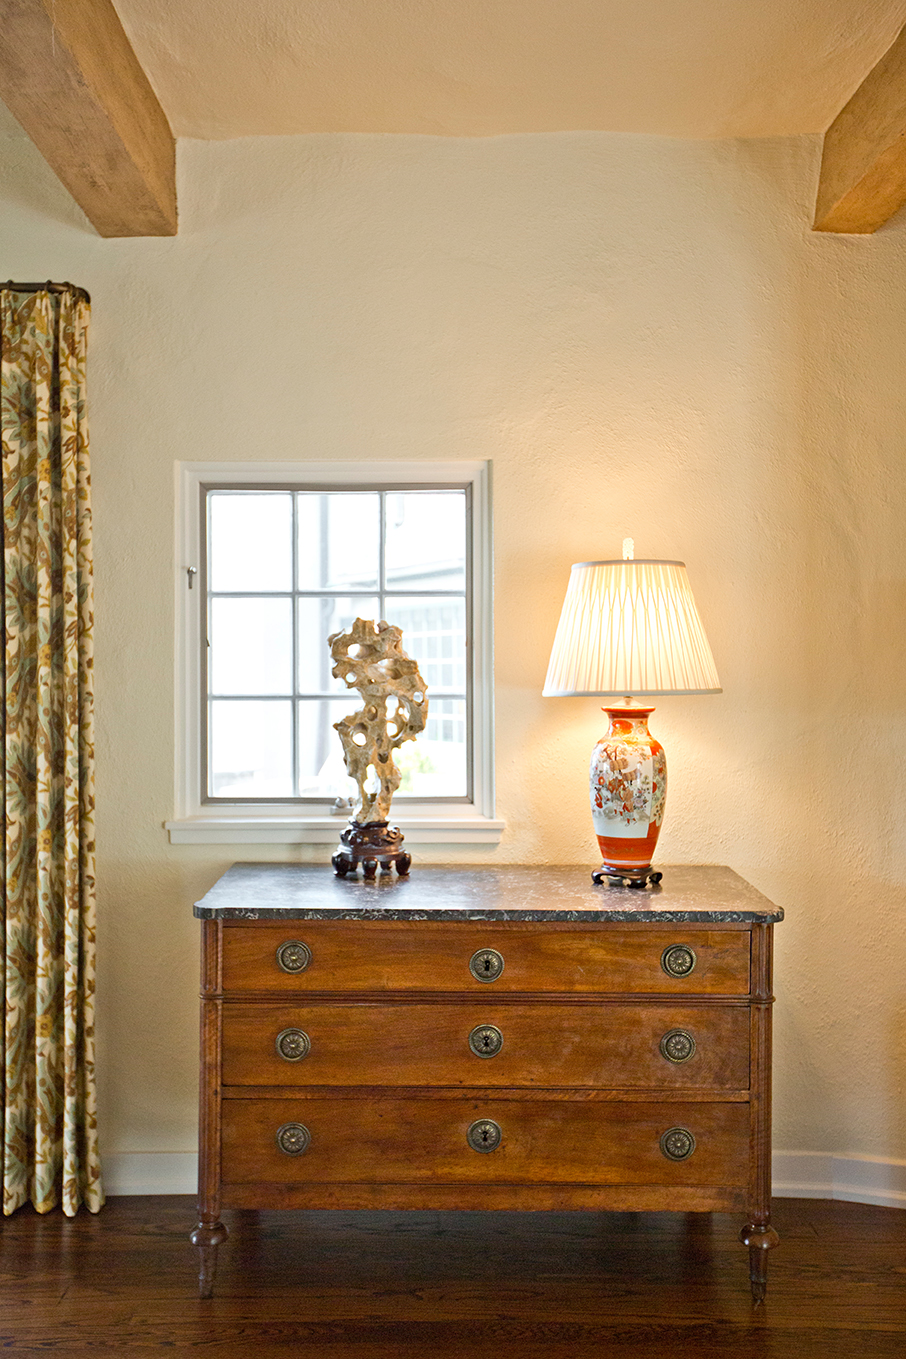 DIGS' designers will always advocate for harmony when it comes to adding visual interest. Here, the French Regency walnut commode echoes the wood ceiling beams. Framed with natural light, the Chinese Scholars rock positively glows.